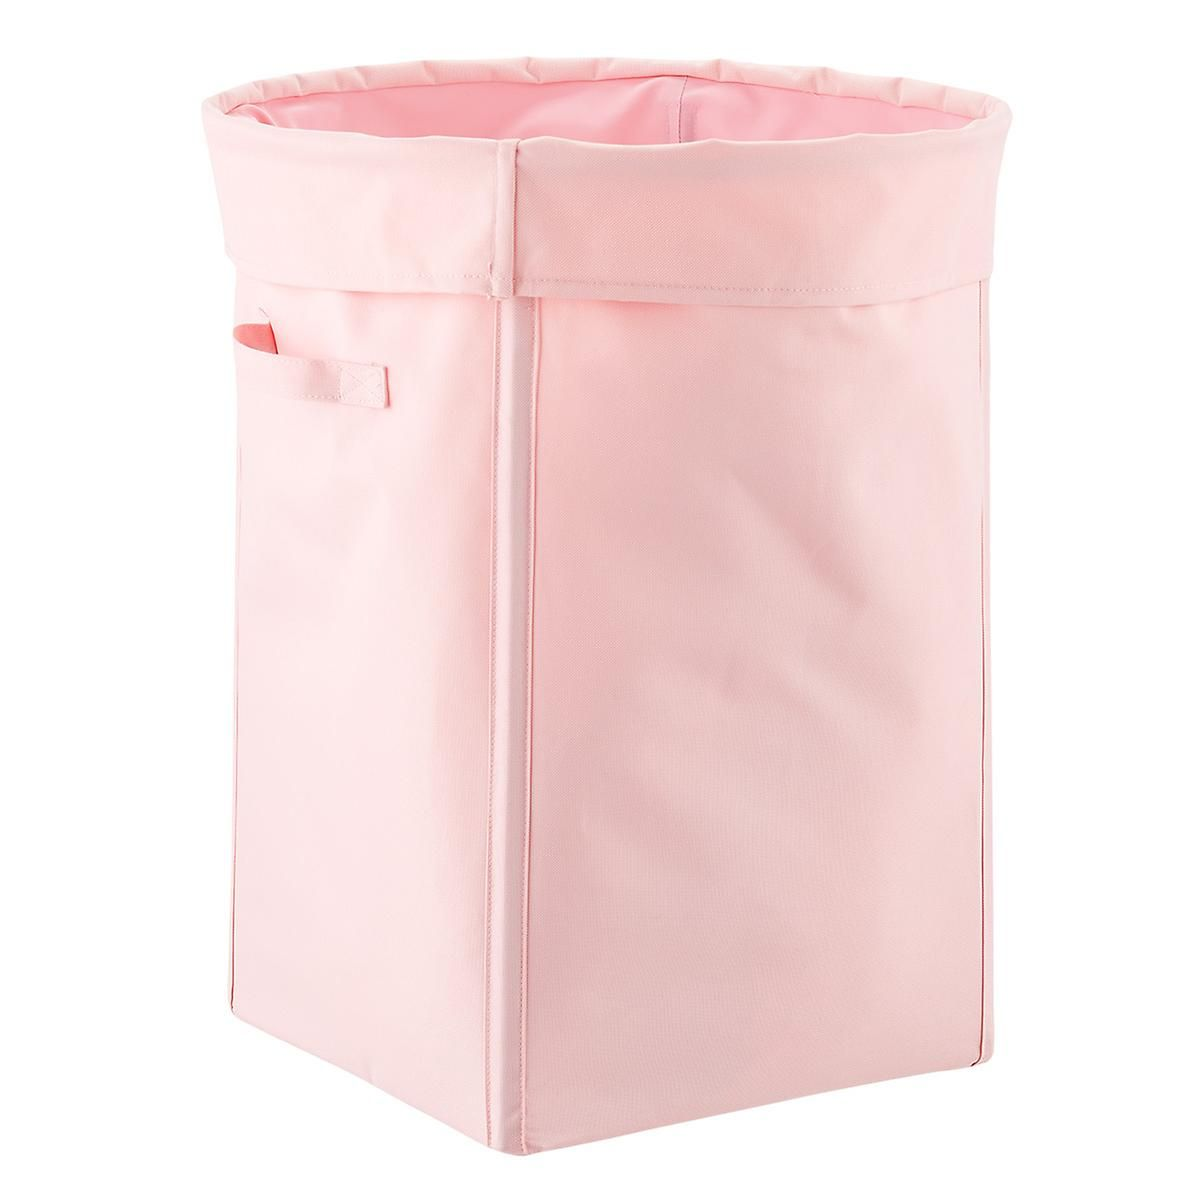 Pink Laundry Hamper The Container Store Laundry Hamper Hamper